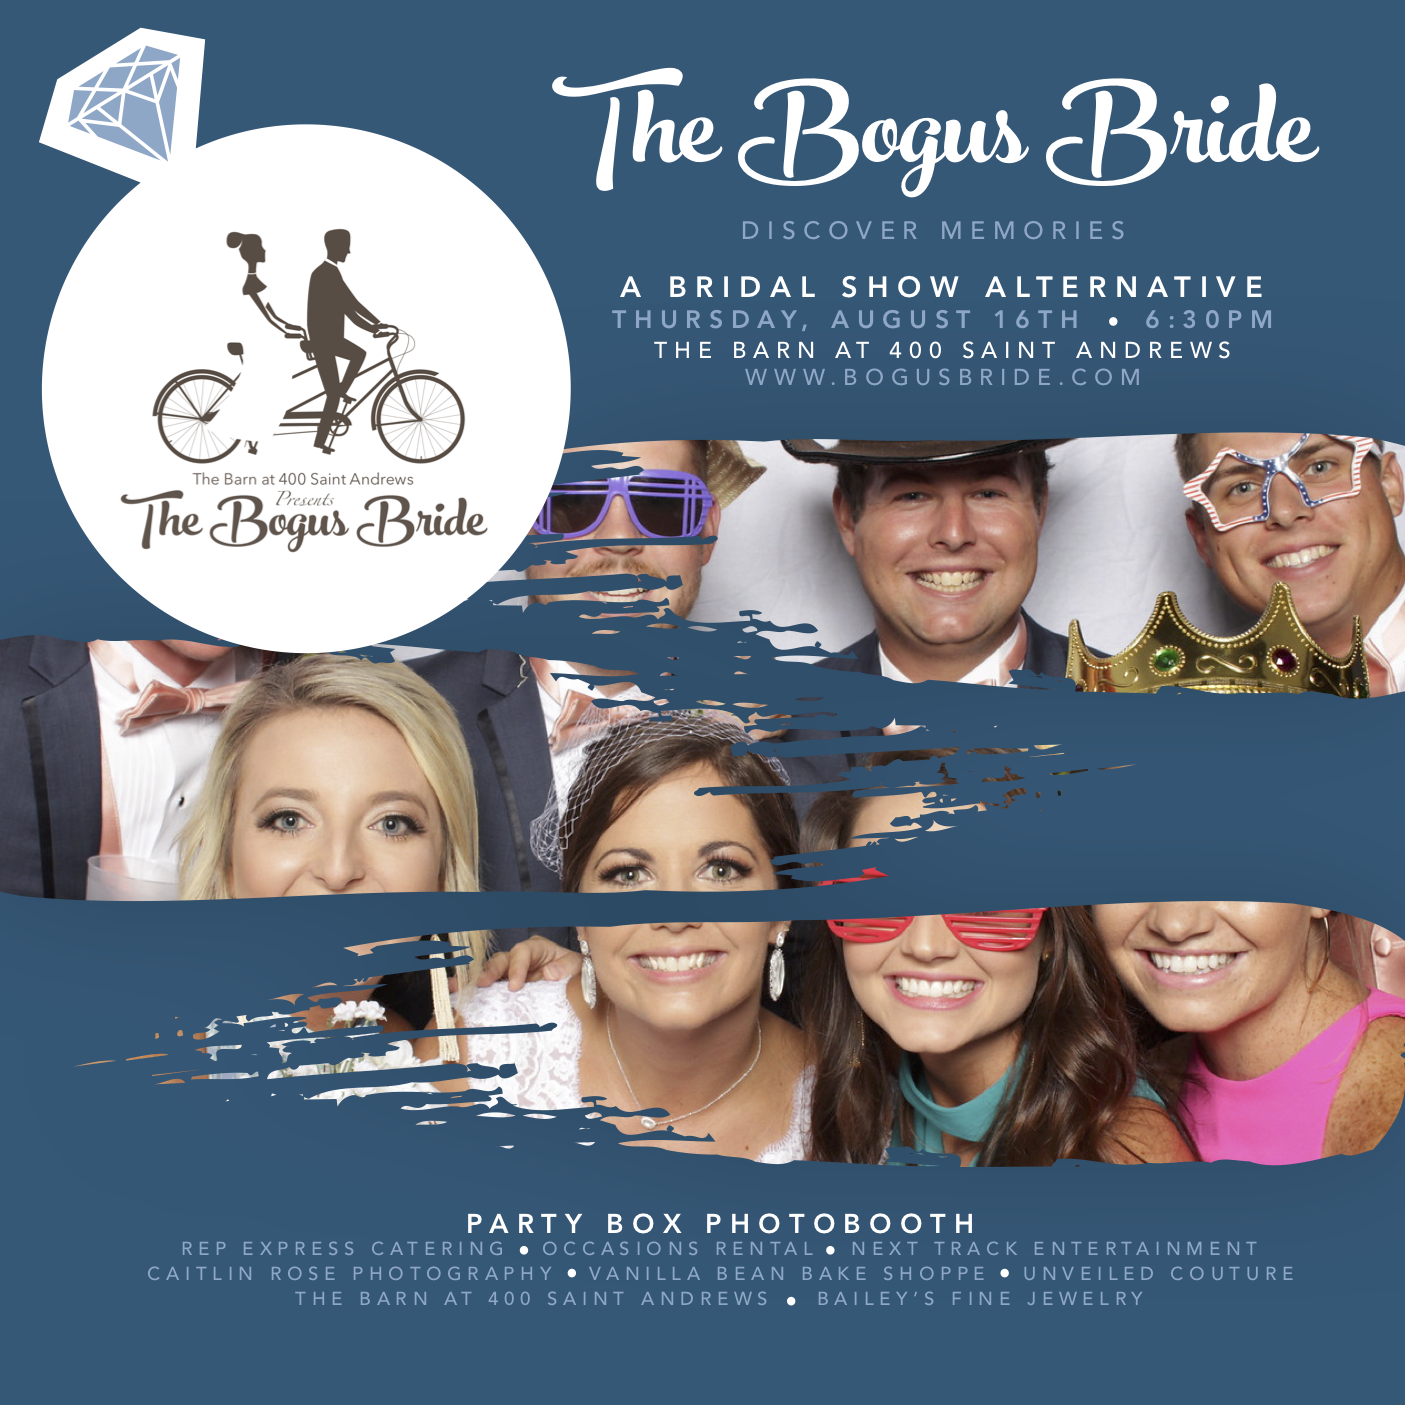 Bogus Bride Bridal Show August 16th